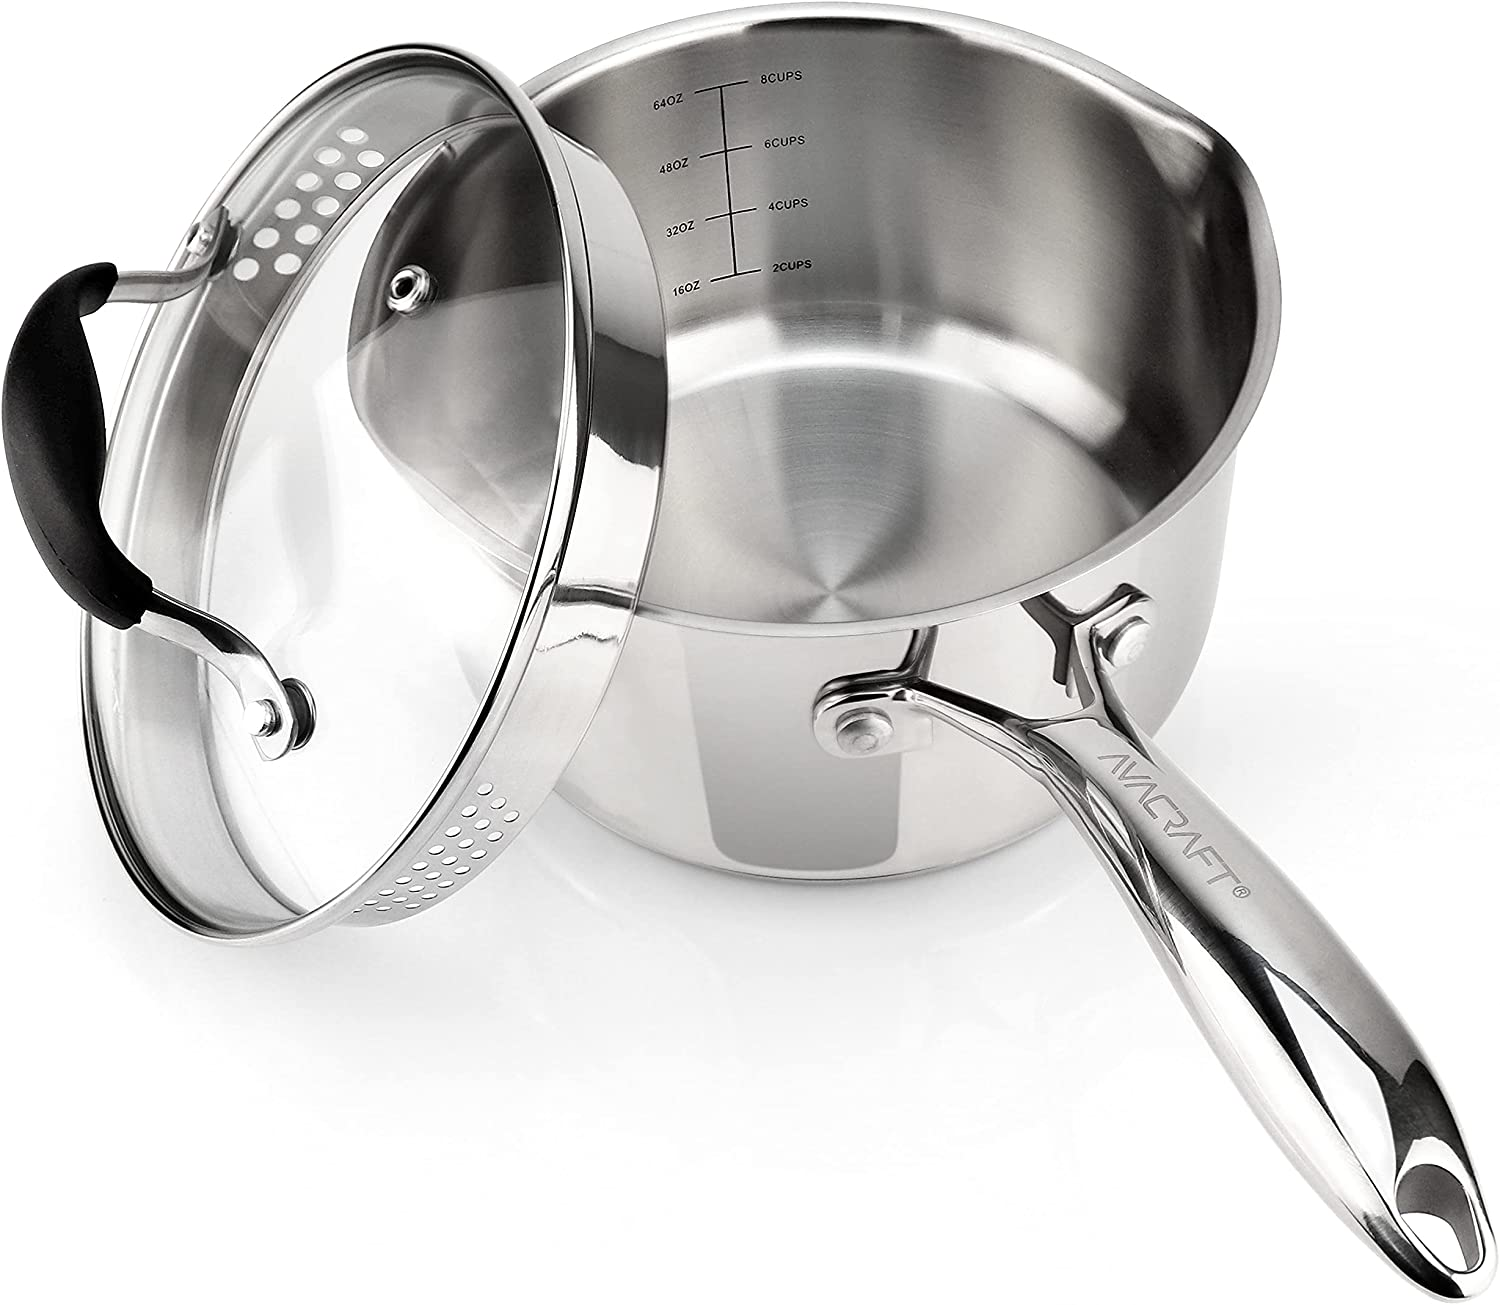 AVACRAFT Stainless Steel Saucepan With Glass Lid, Strainer Lid